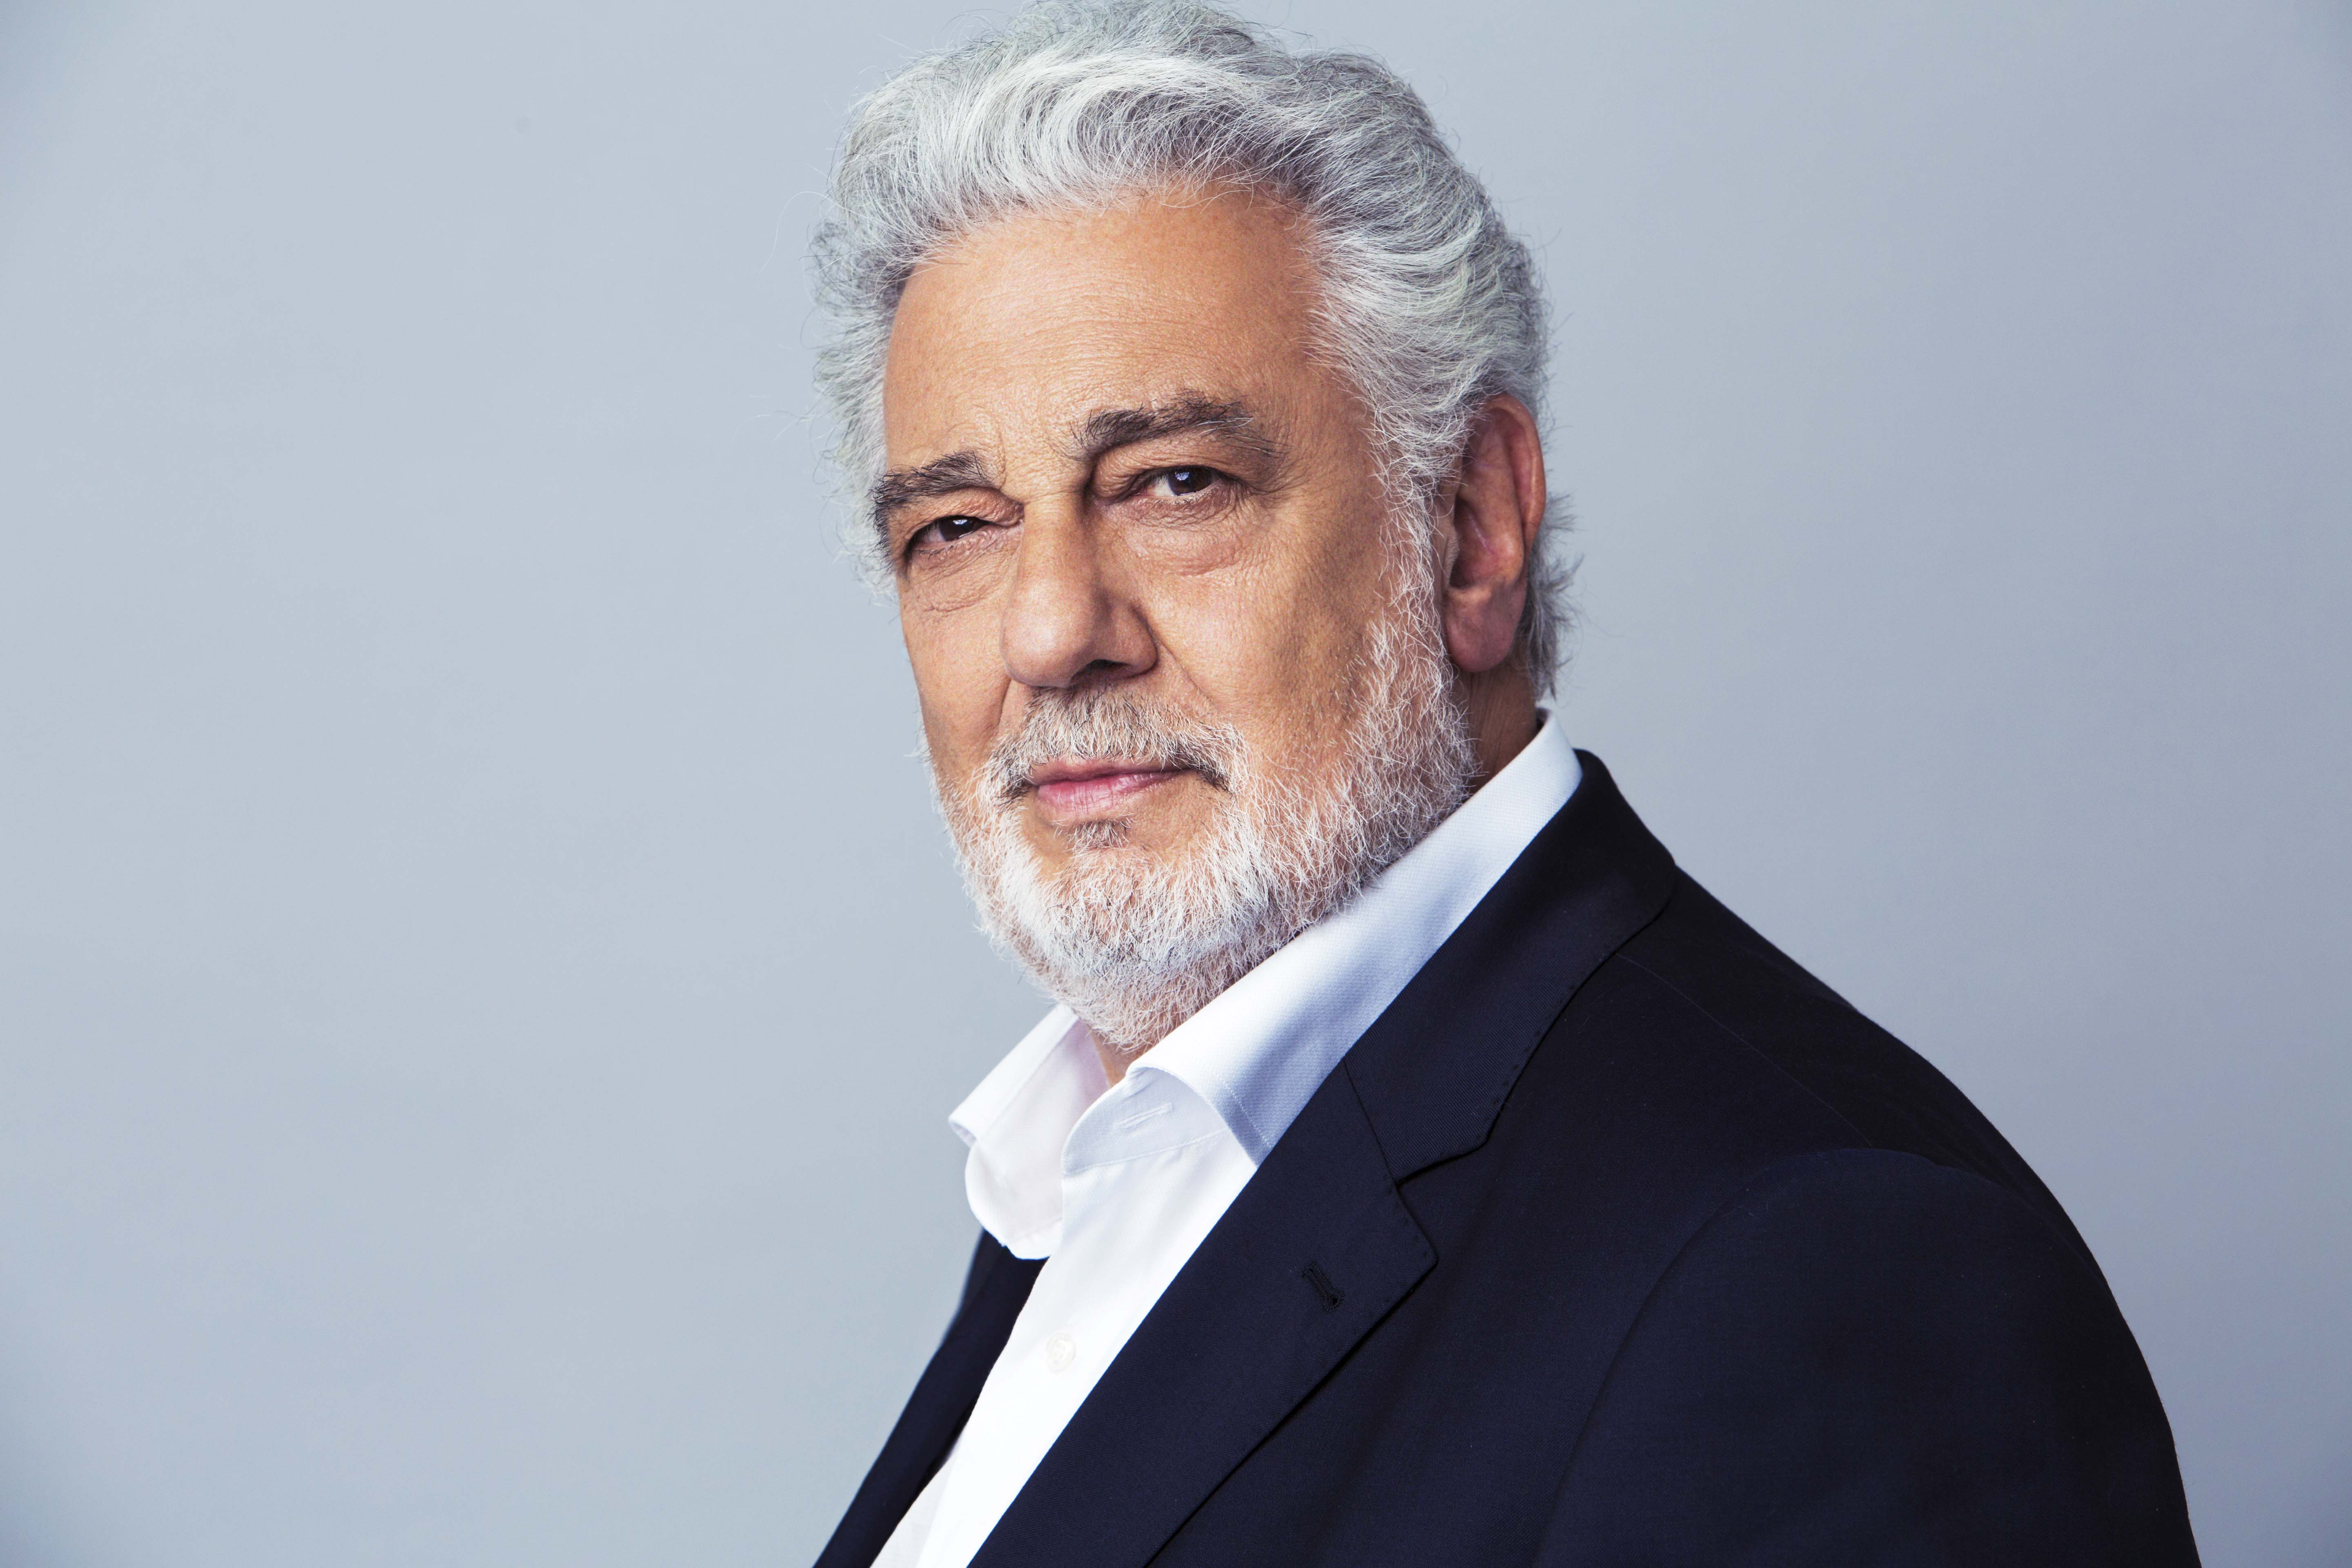 Bags Live Presents Placido Domingo Le Canta A San